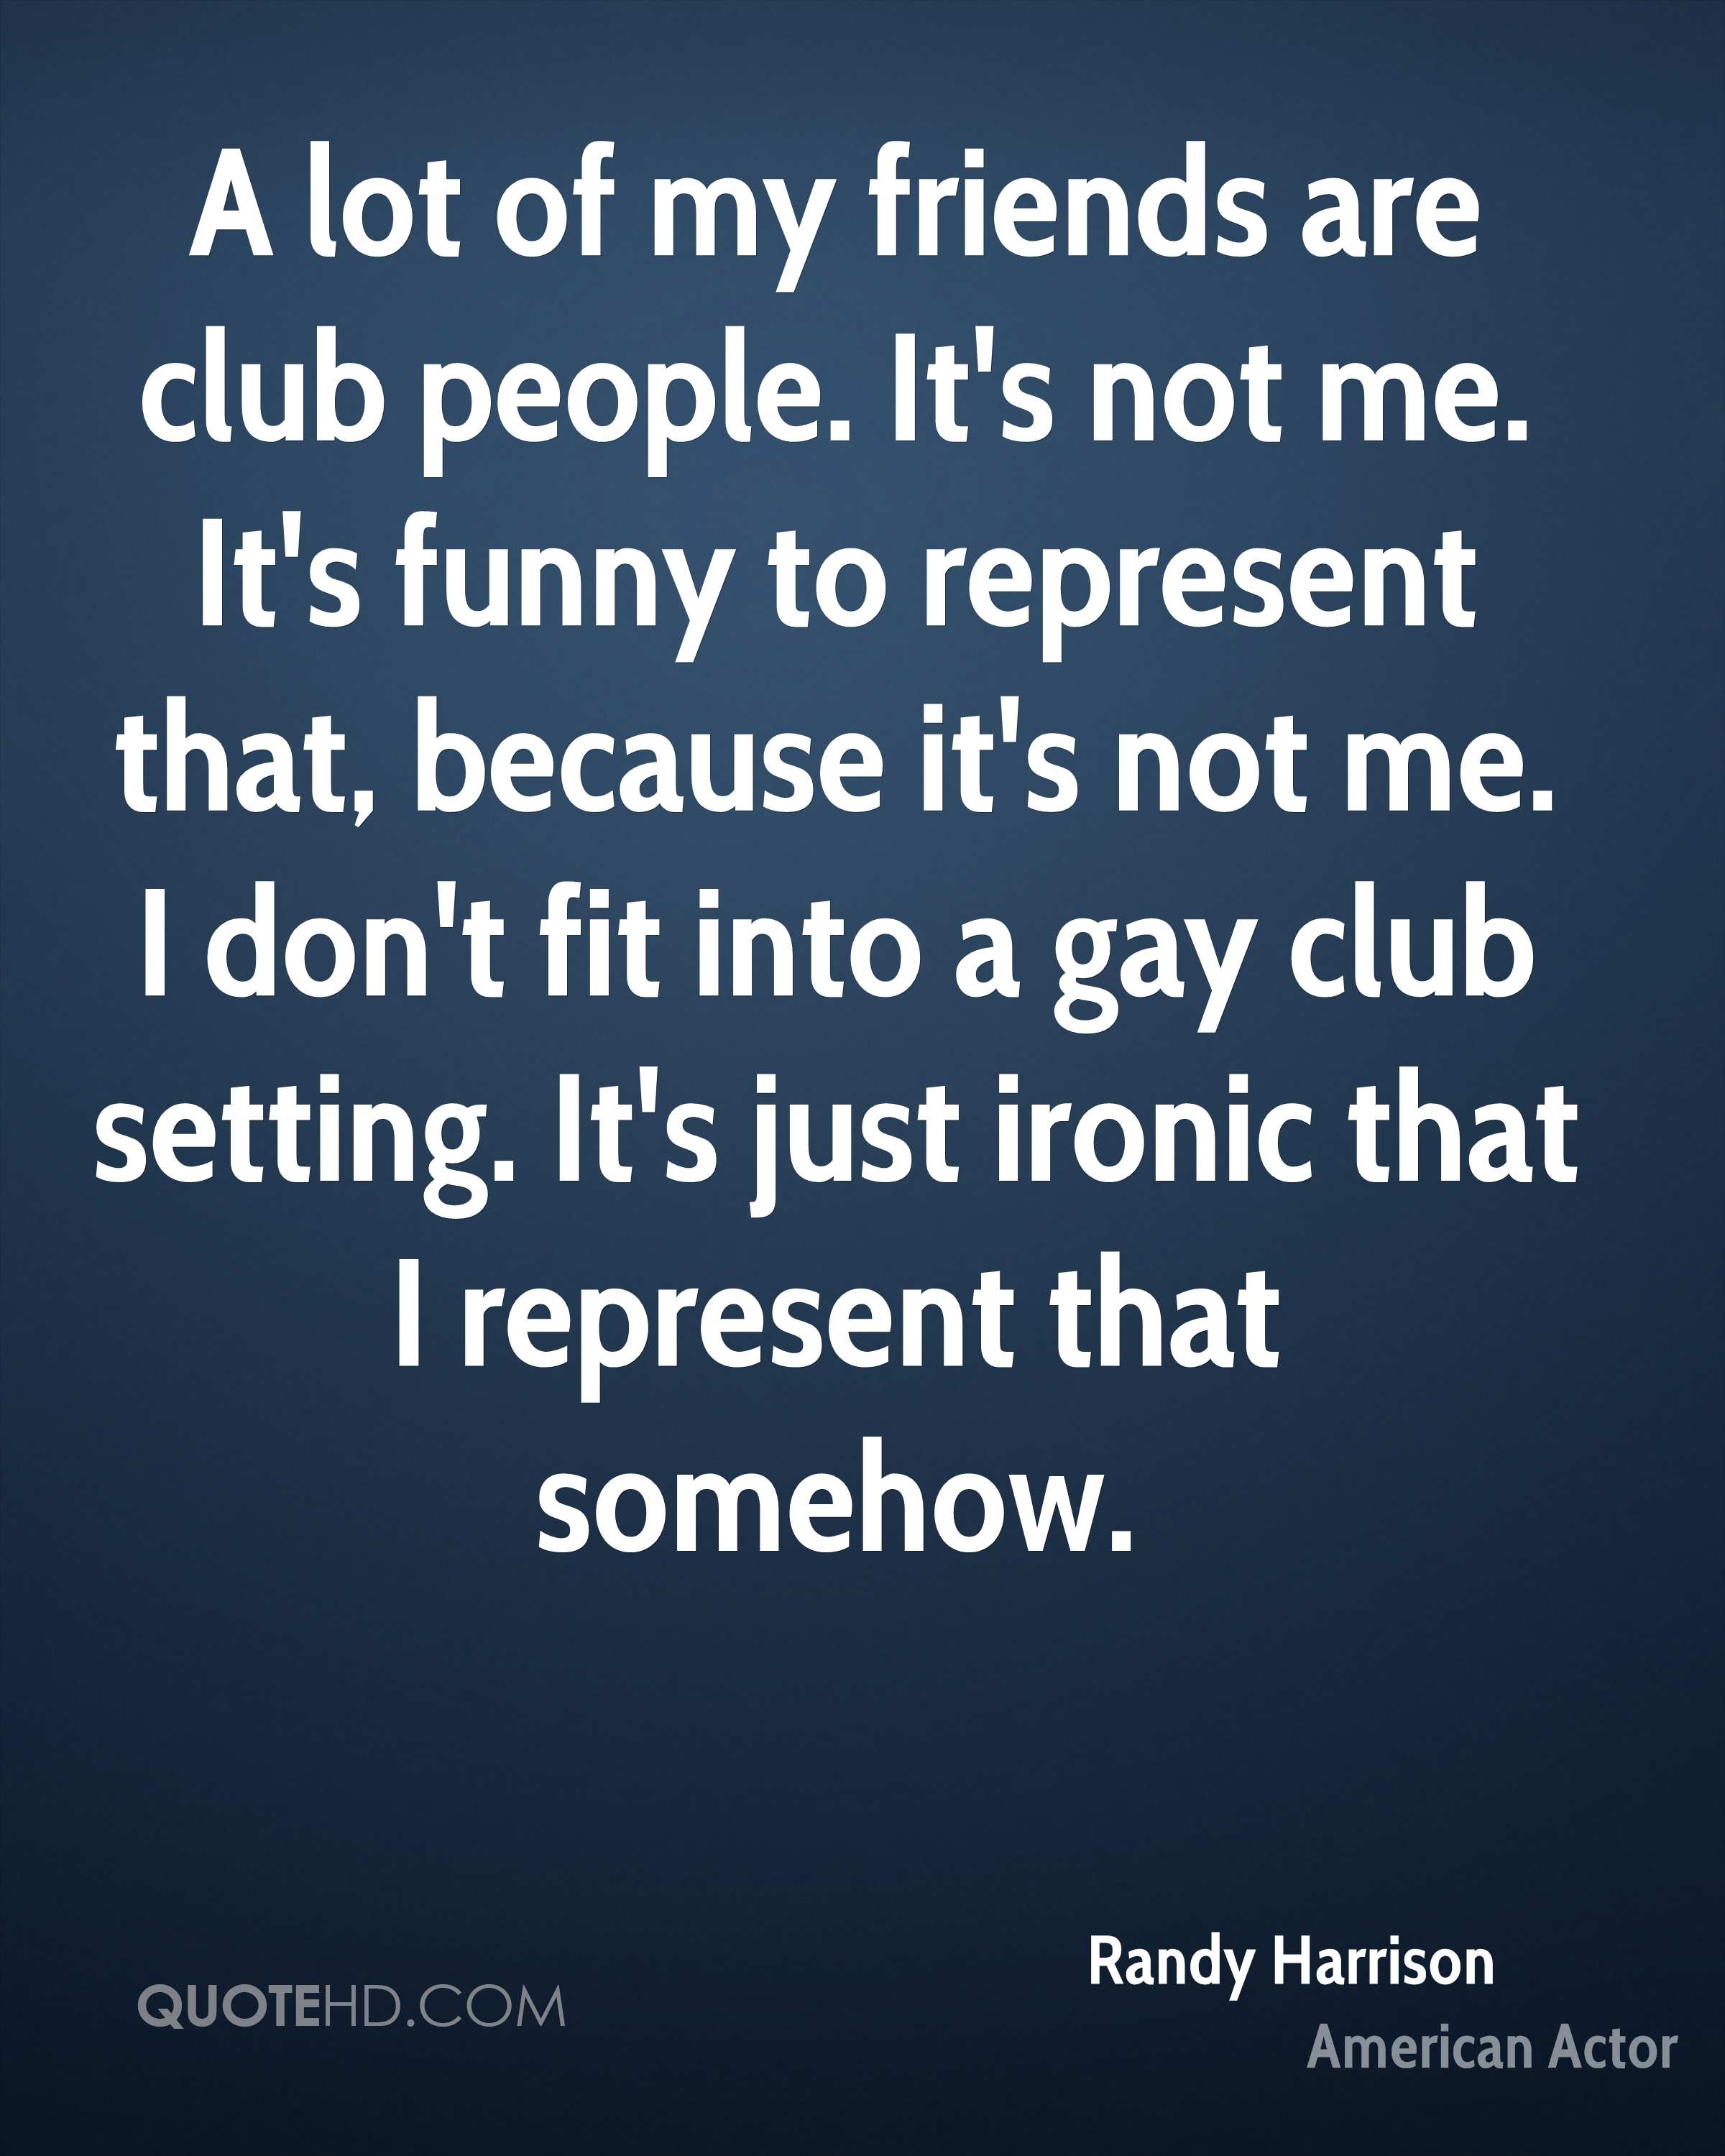 A lot of my friends are club people. It's not me. It's funny to represent that, because it's not me. I don't fit into a gay club setting. It's just ironic that I represent that somehow.